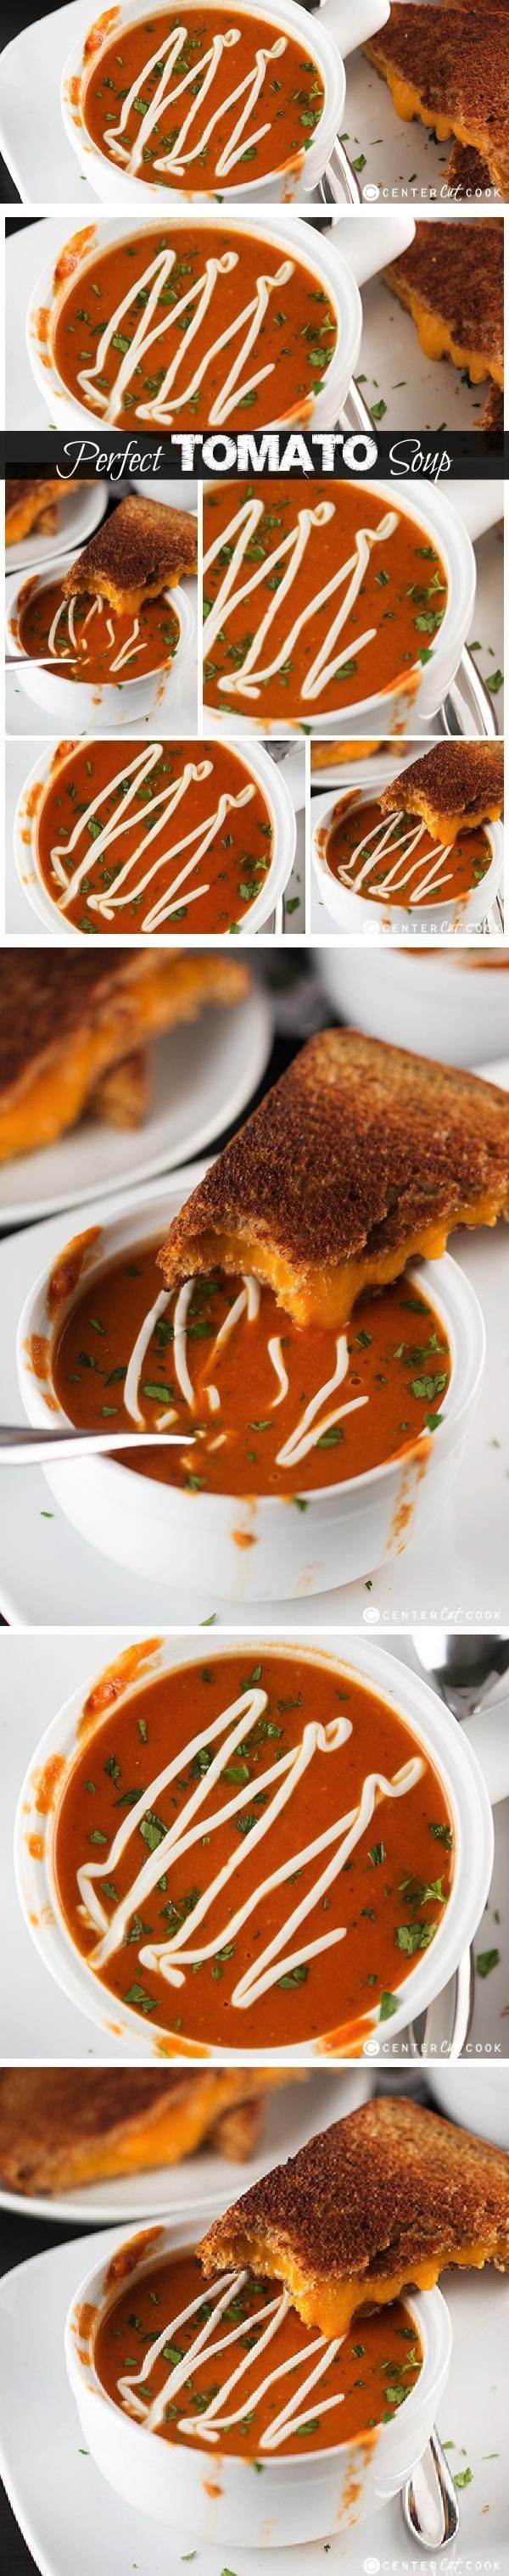 The PERFECT TOMATO SOUP Recipe made from scratch with fire roasted tomatoes and a splash of heavy cream and parmesan cheese. Pairs perfectly with grilled cheese!